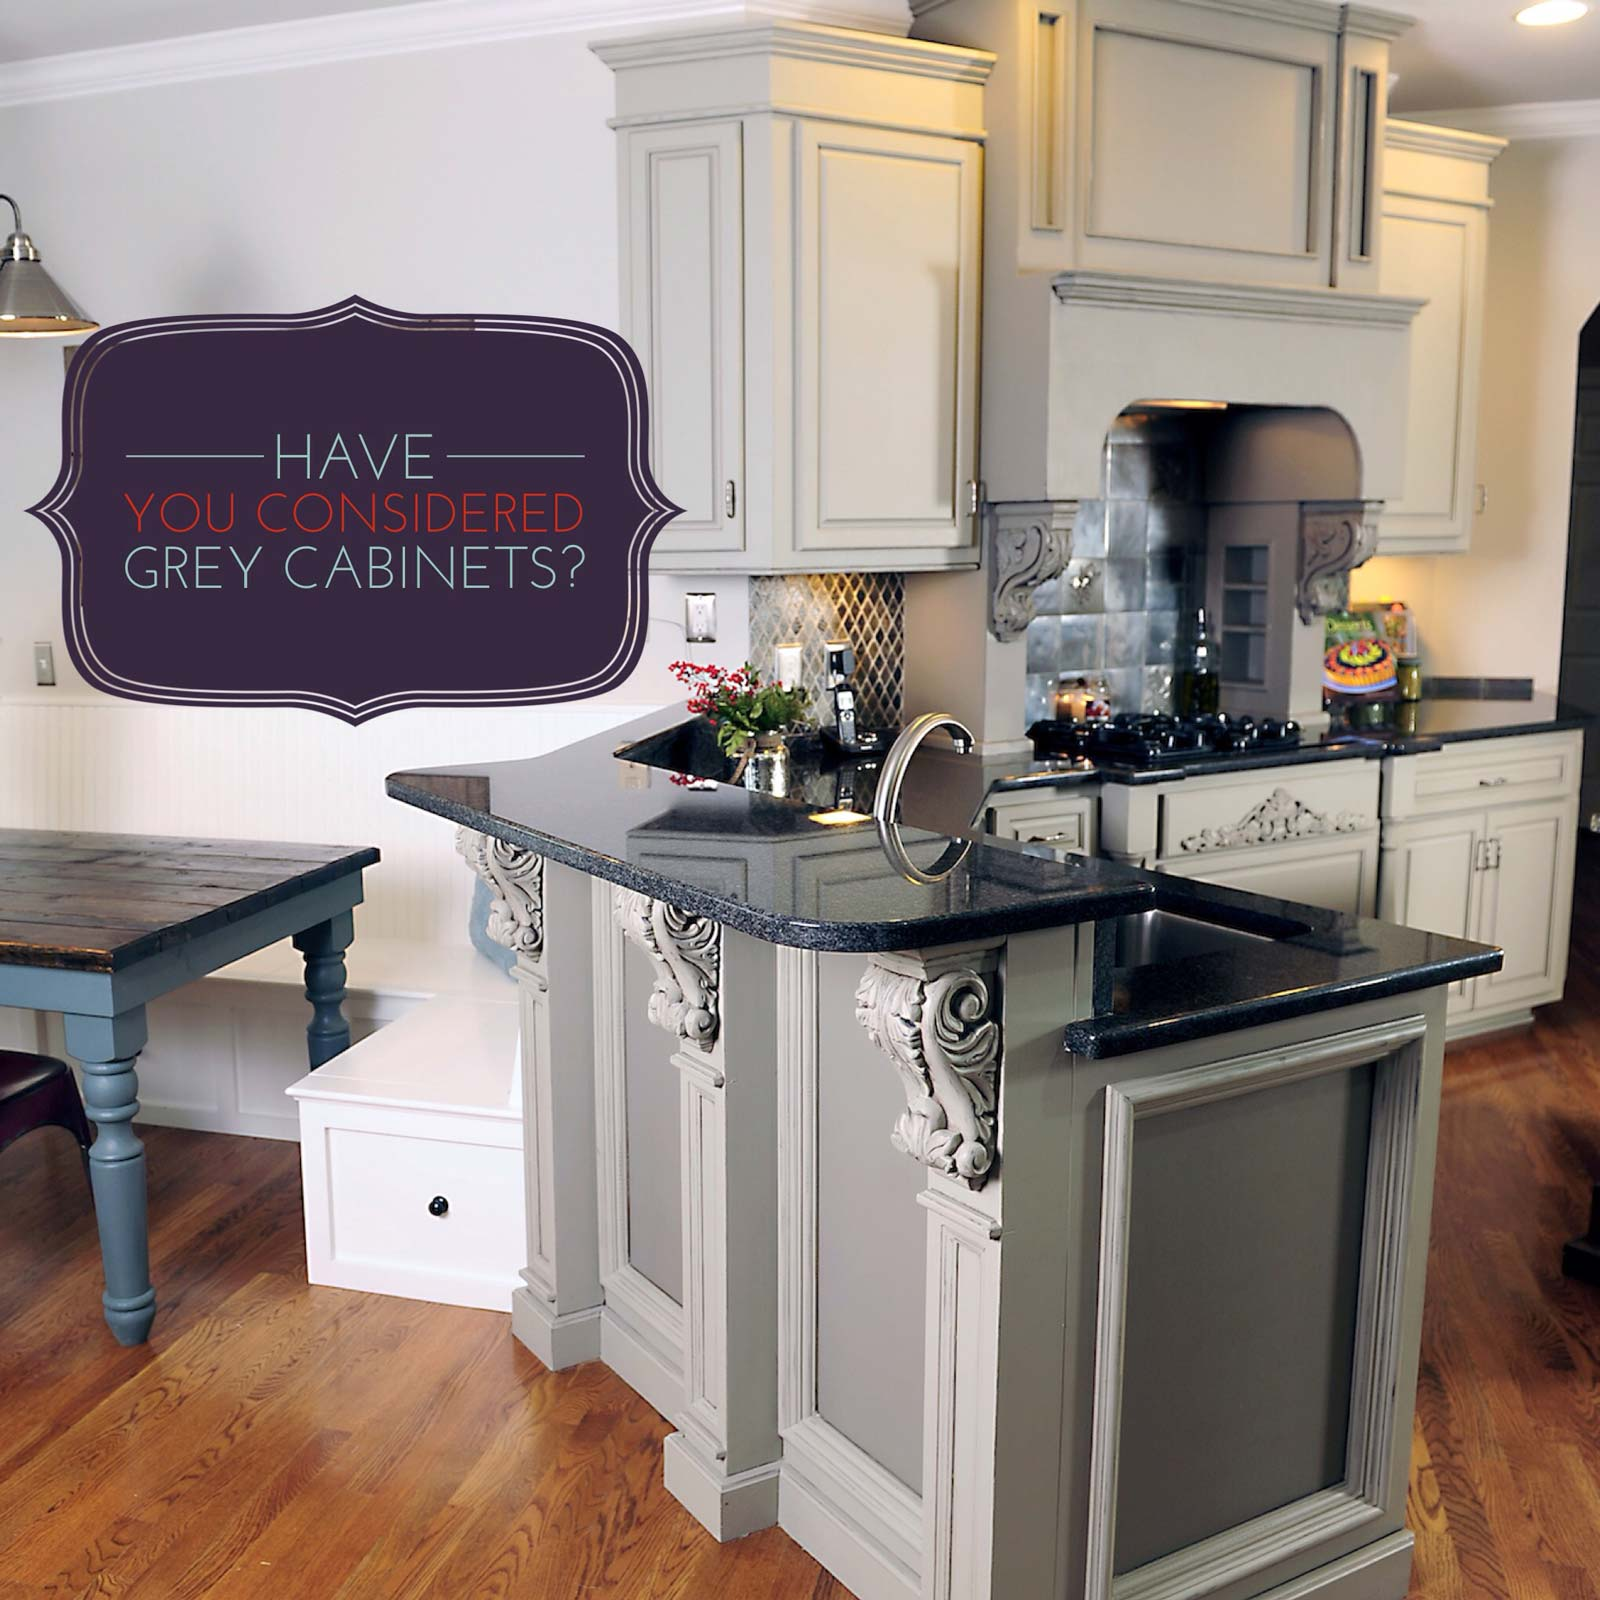 Grey Painted Kitchen Cabinets: Have You Considered Grey Kitchen Cabinets?